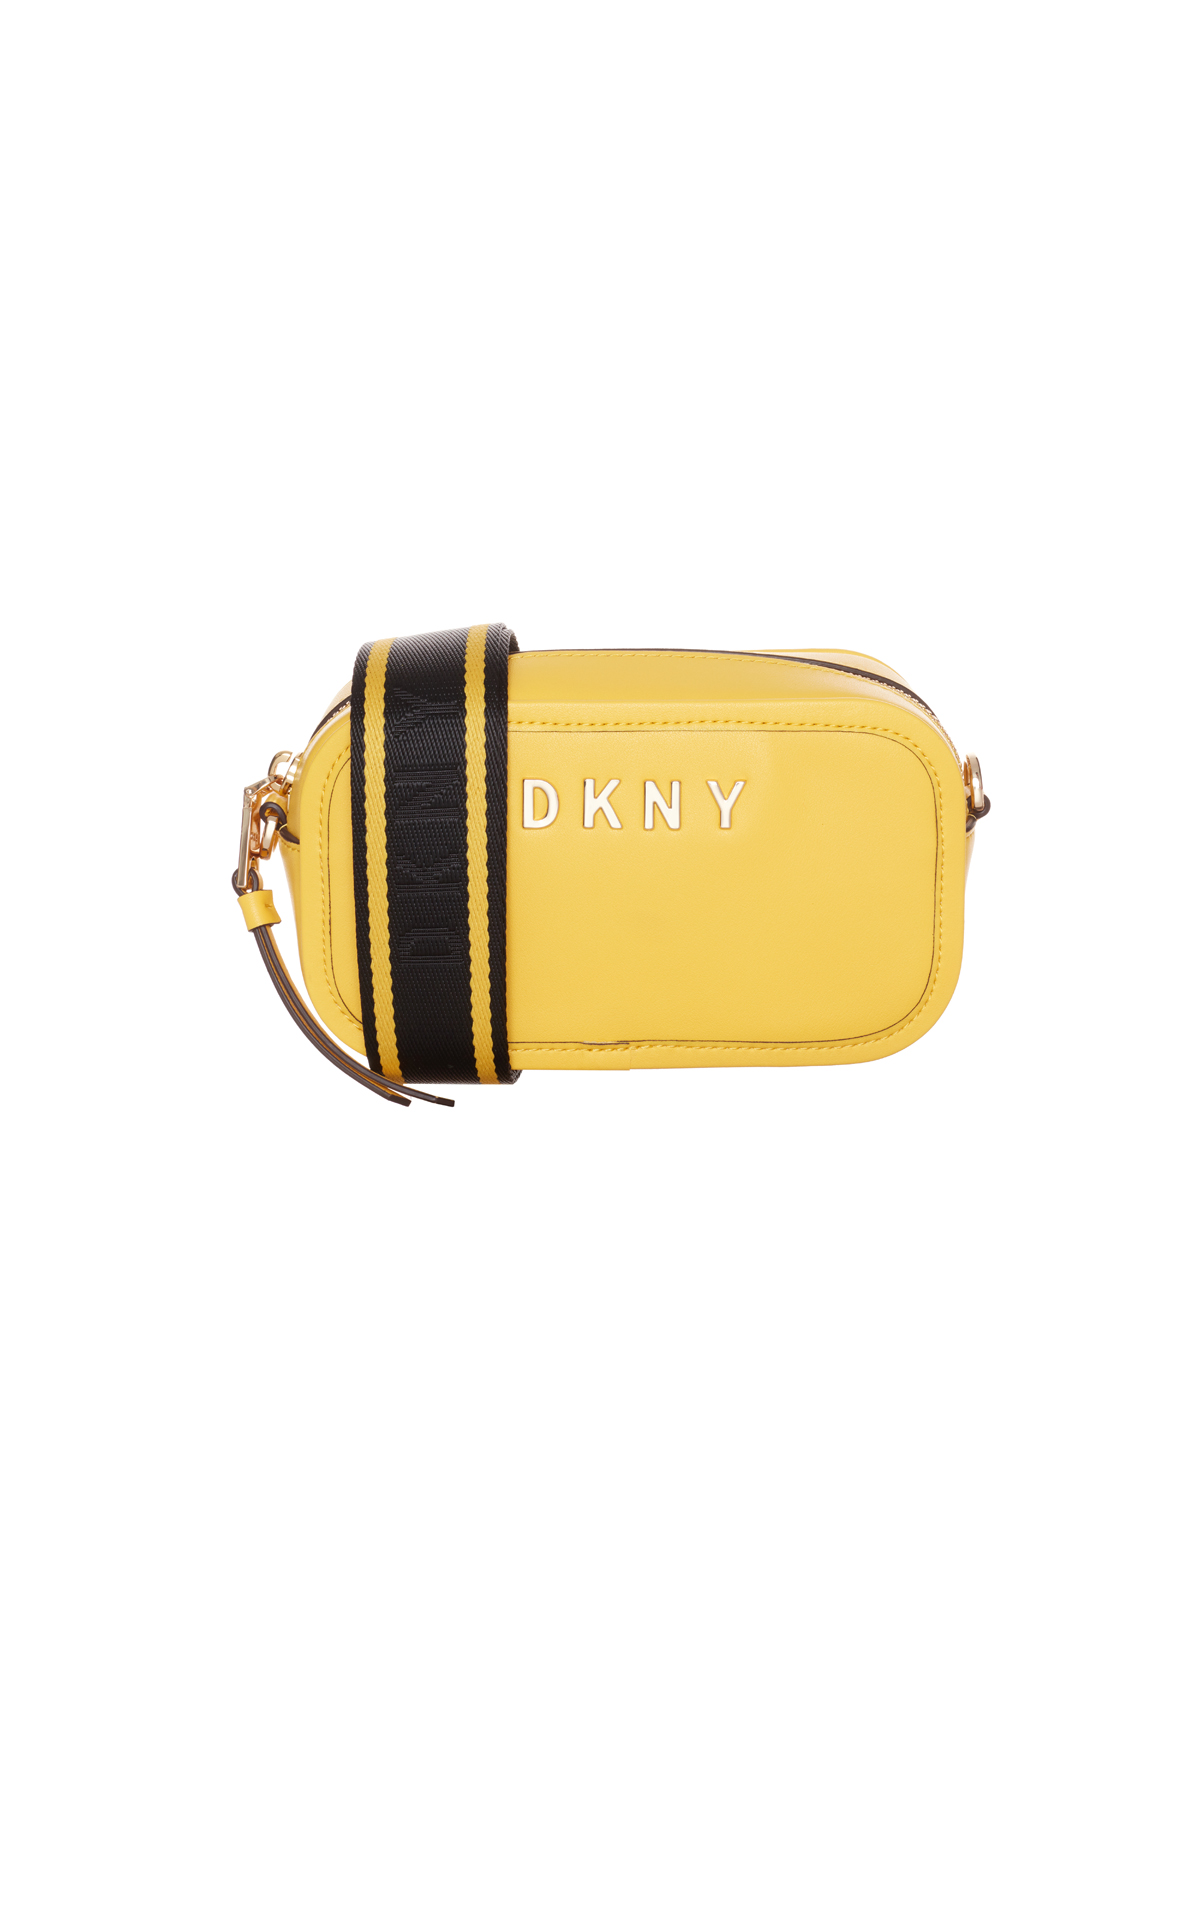 DKNY Yellow bum bag from Bicester Village